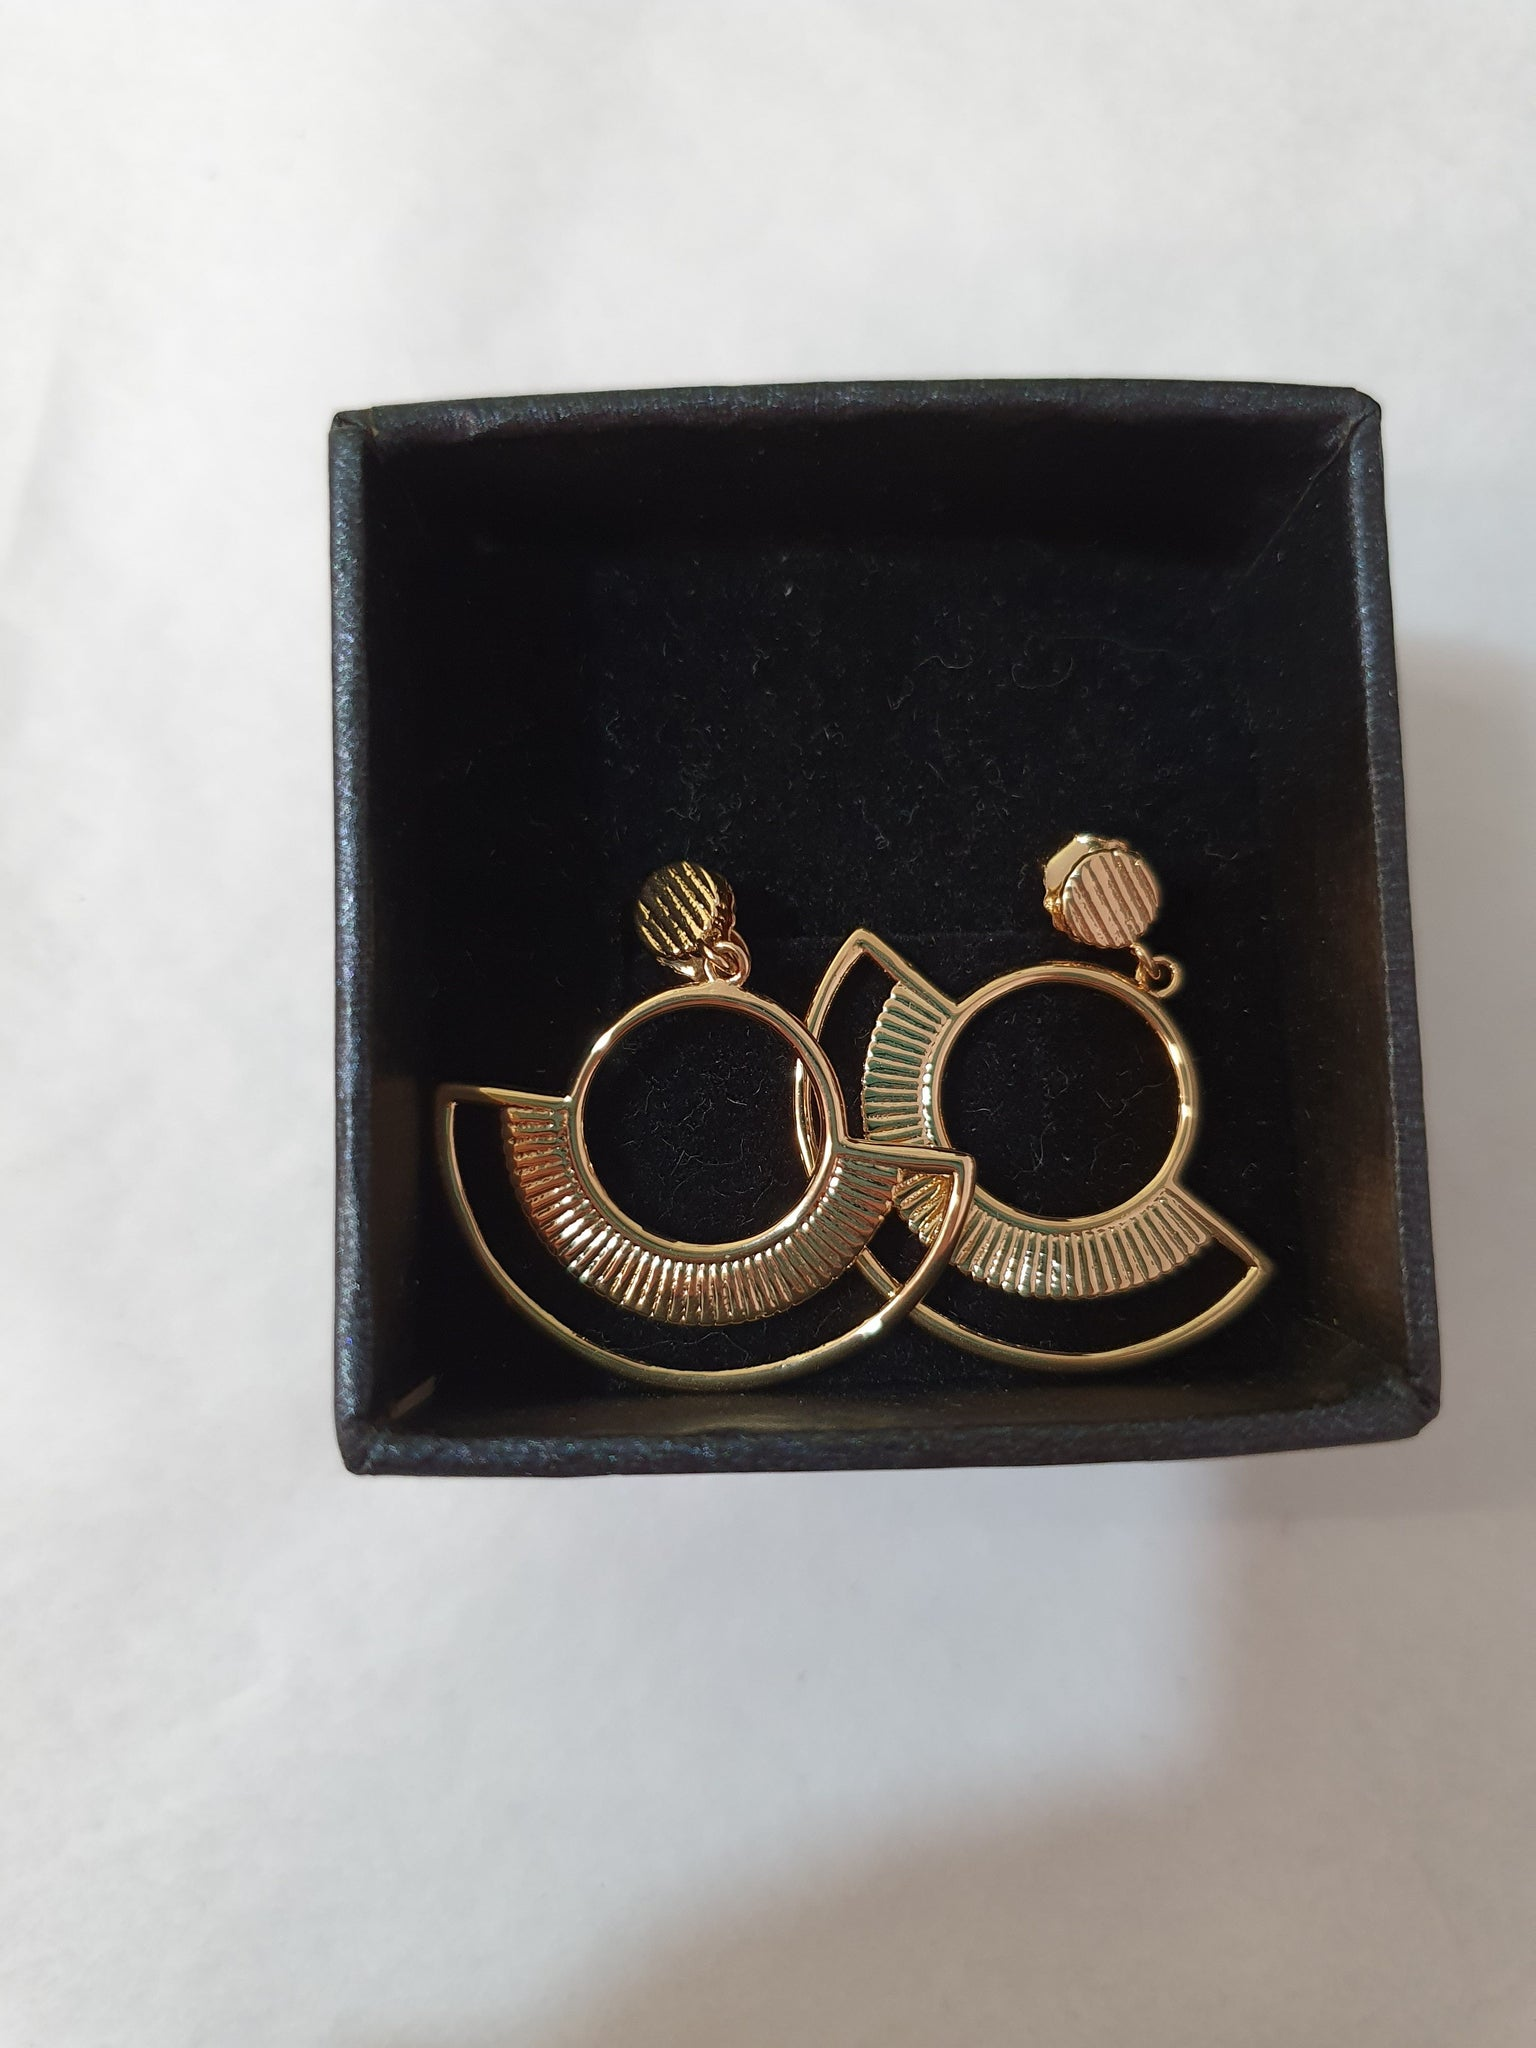 Some Gold Earrings